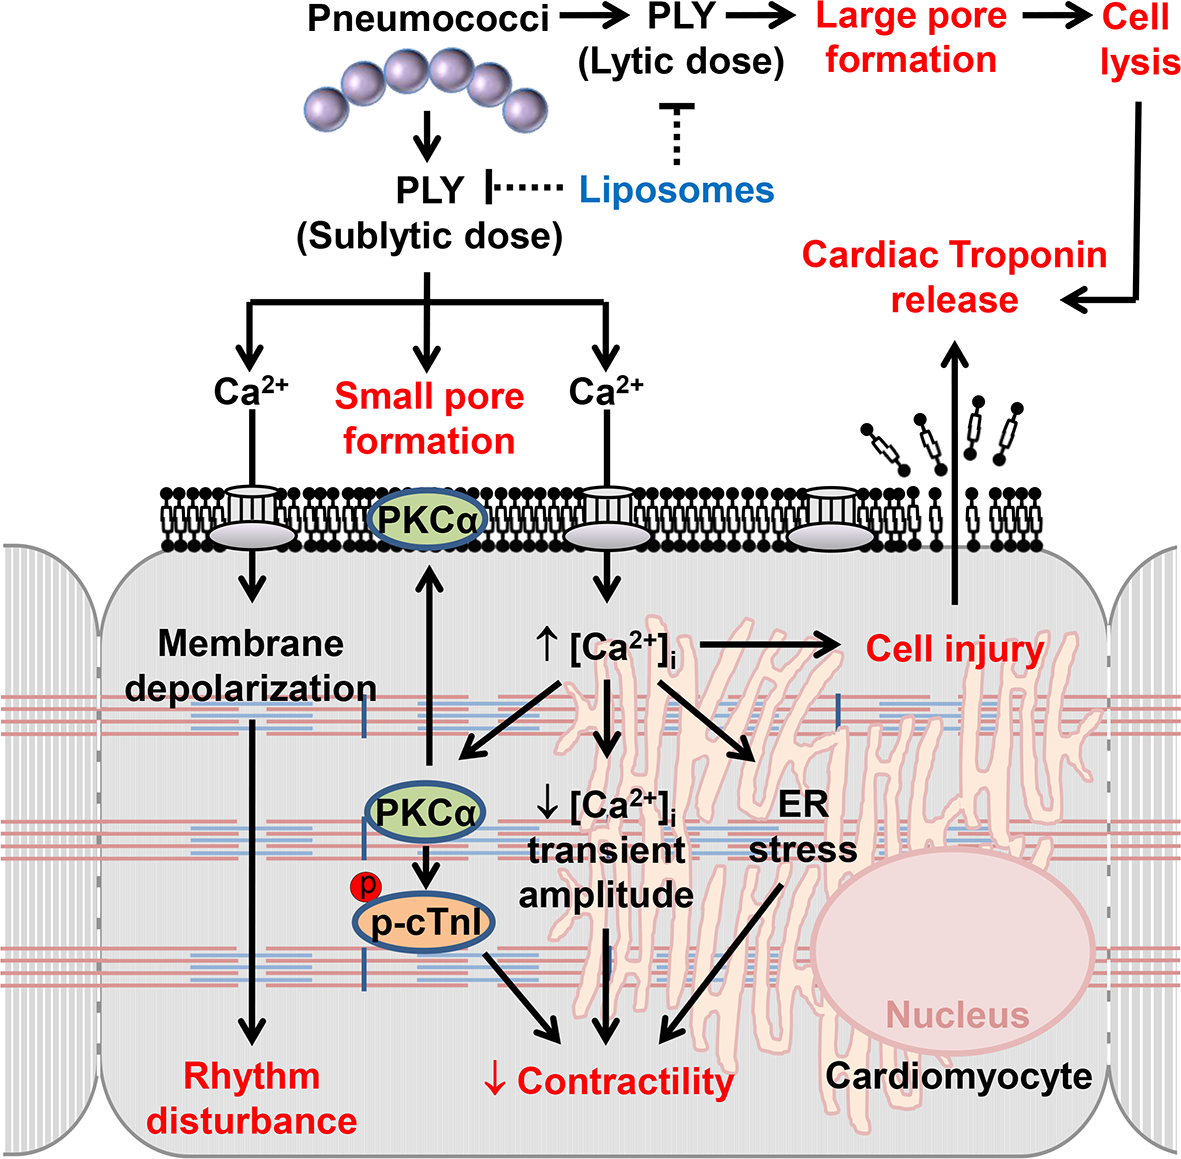 The mechanisms and effects of PLY on cardiomyocytes.